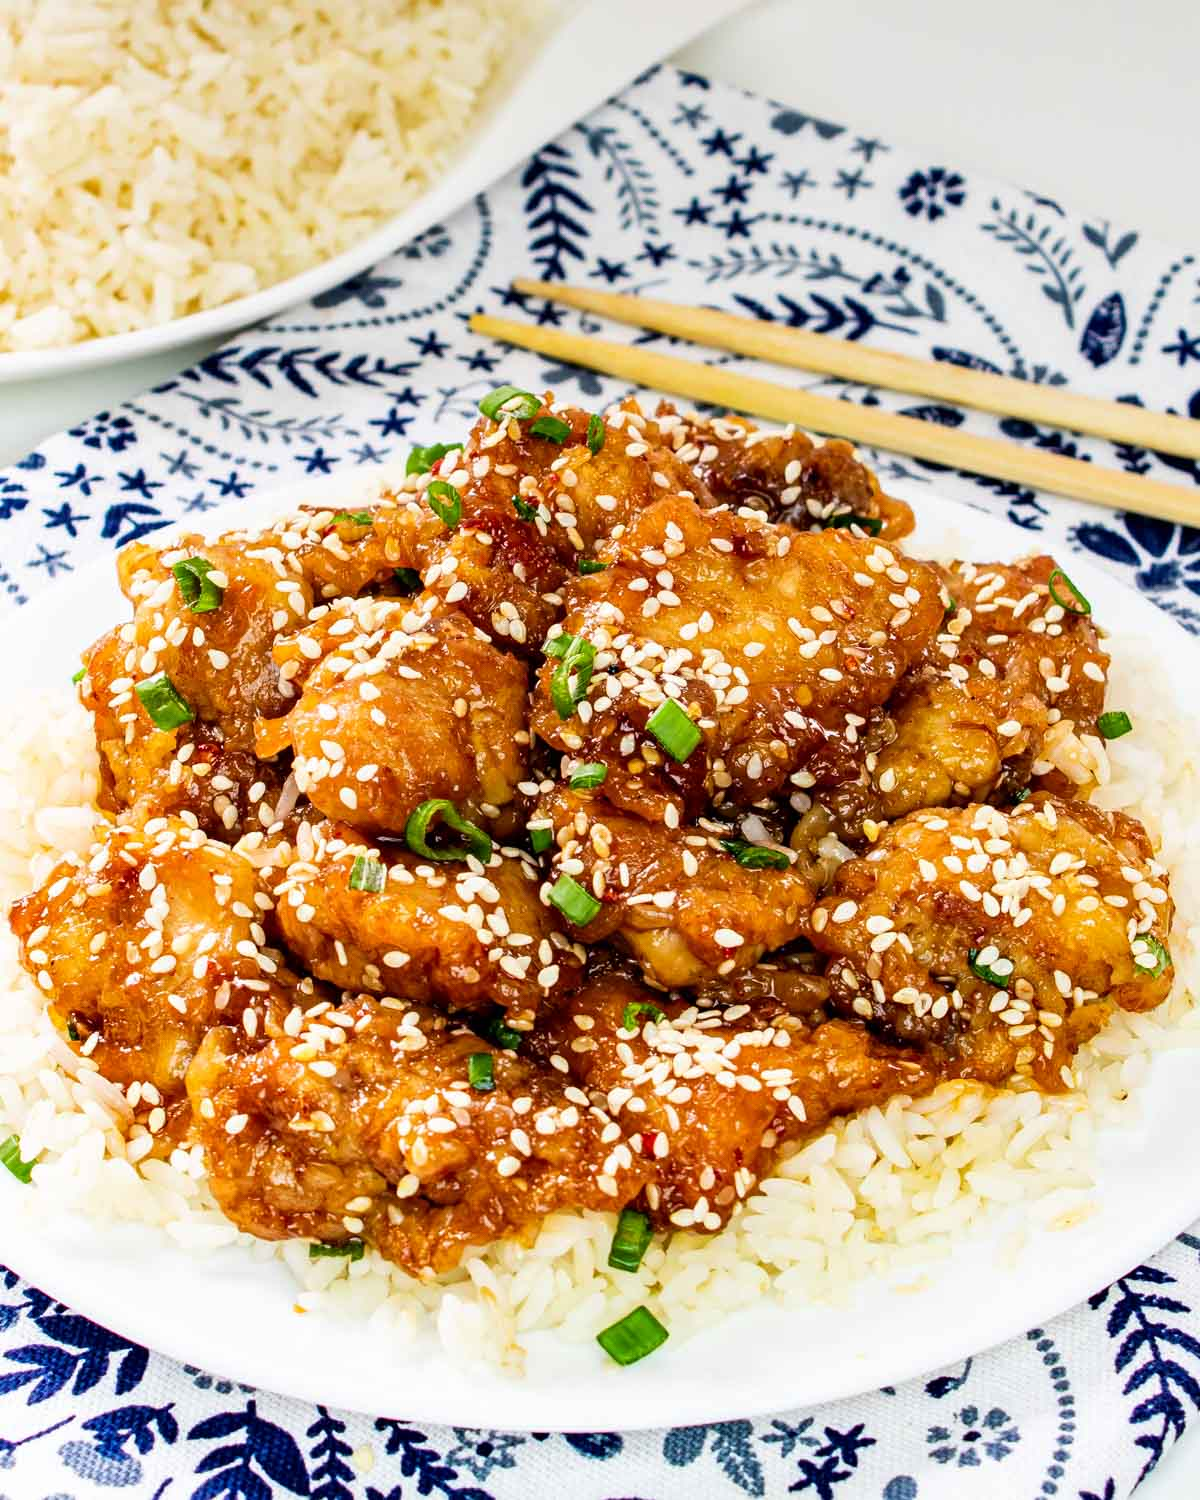 sesame chicken over cooked rice on a white plate.